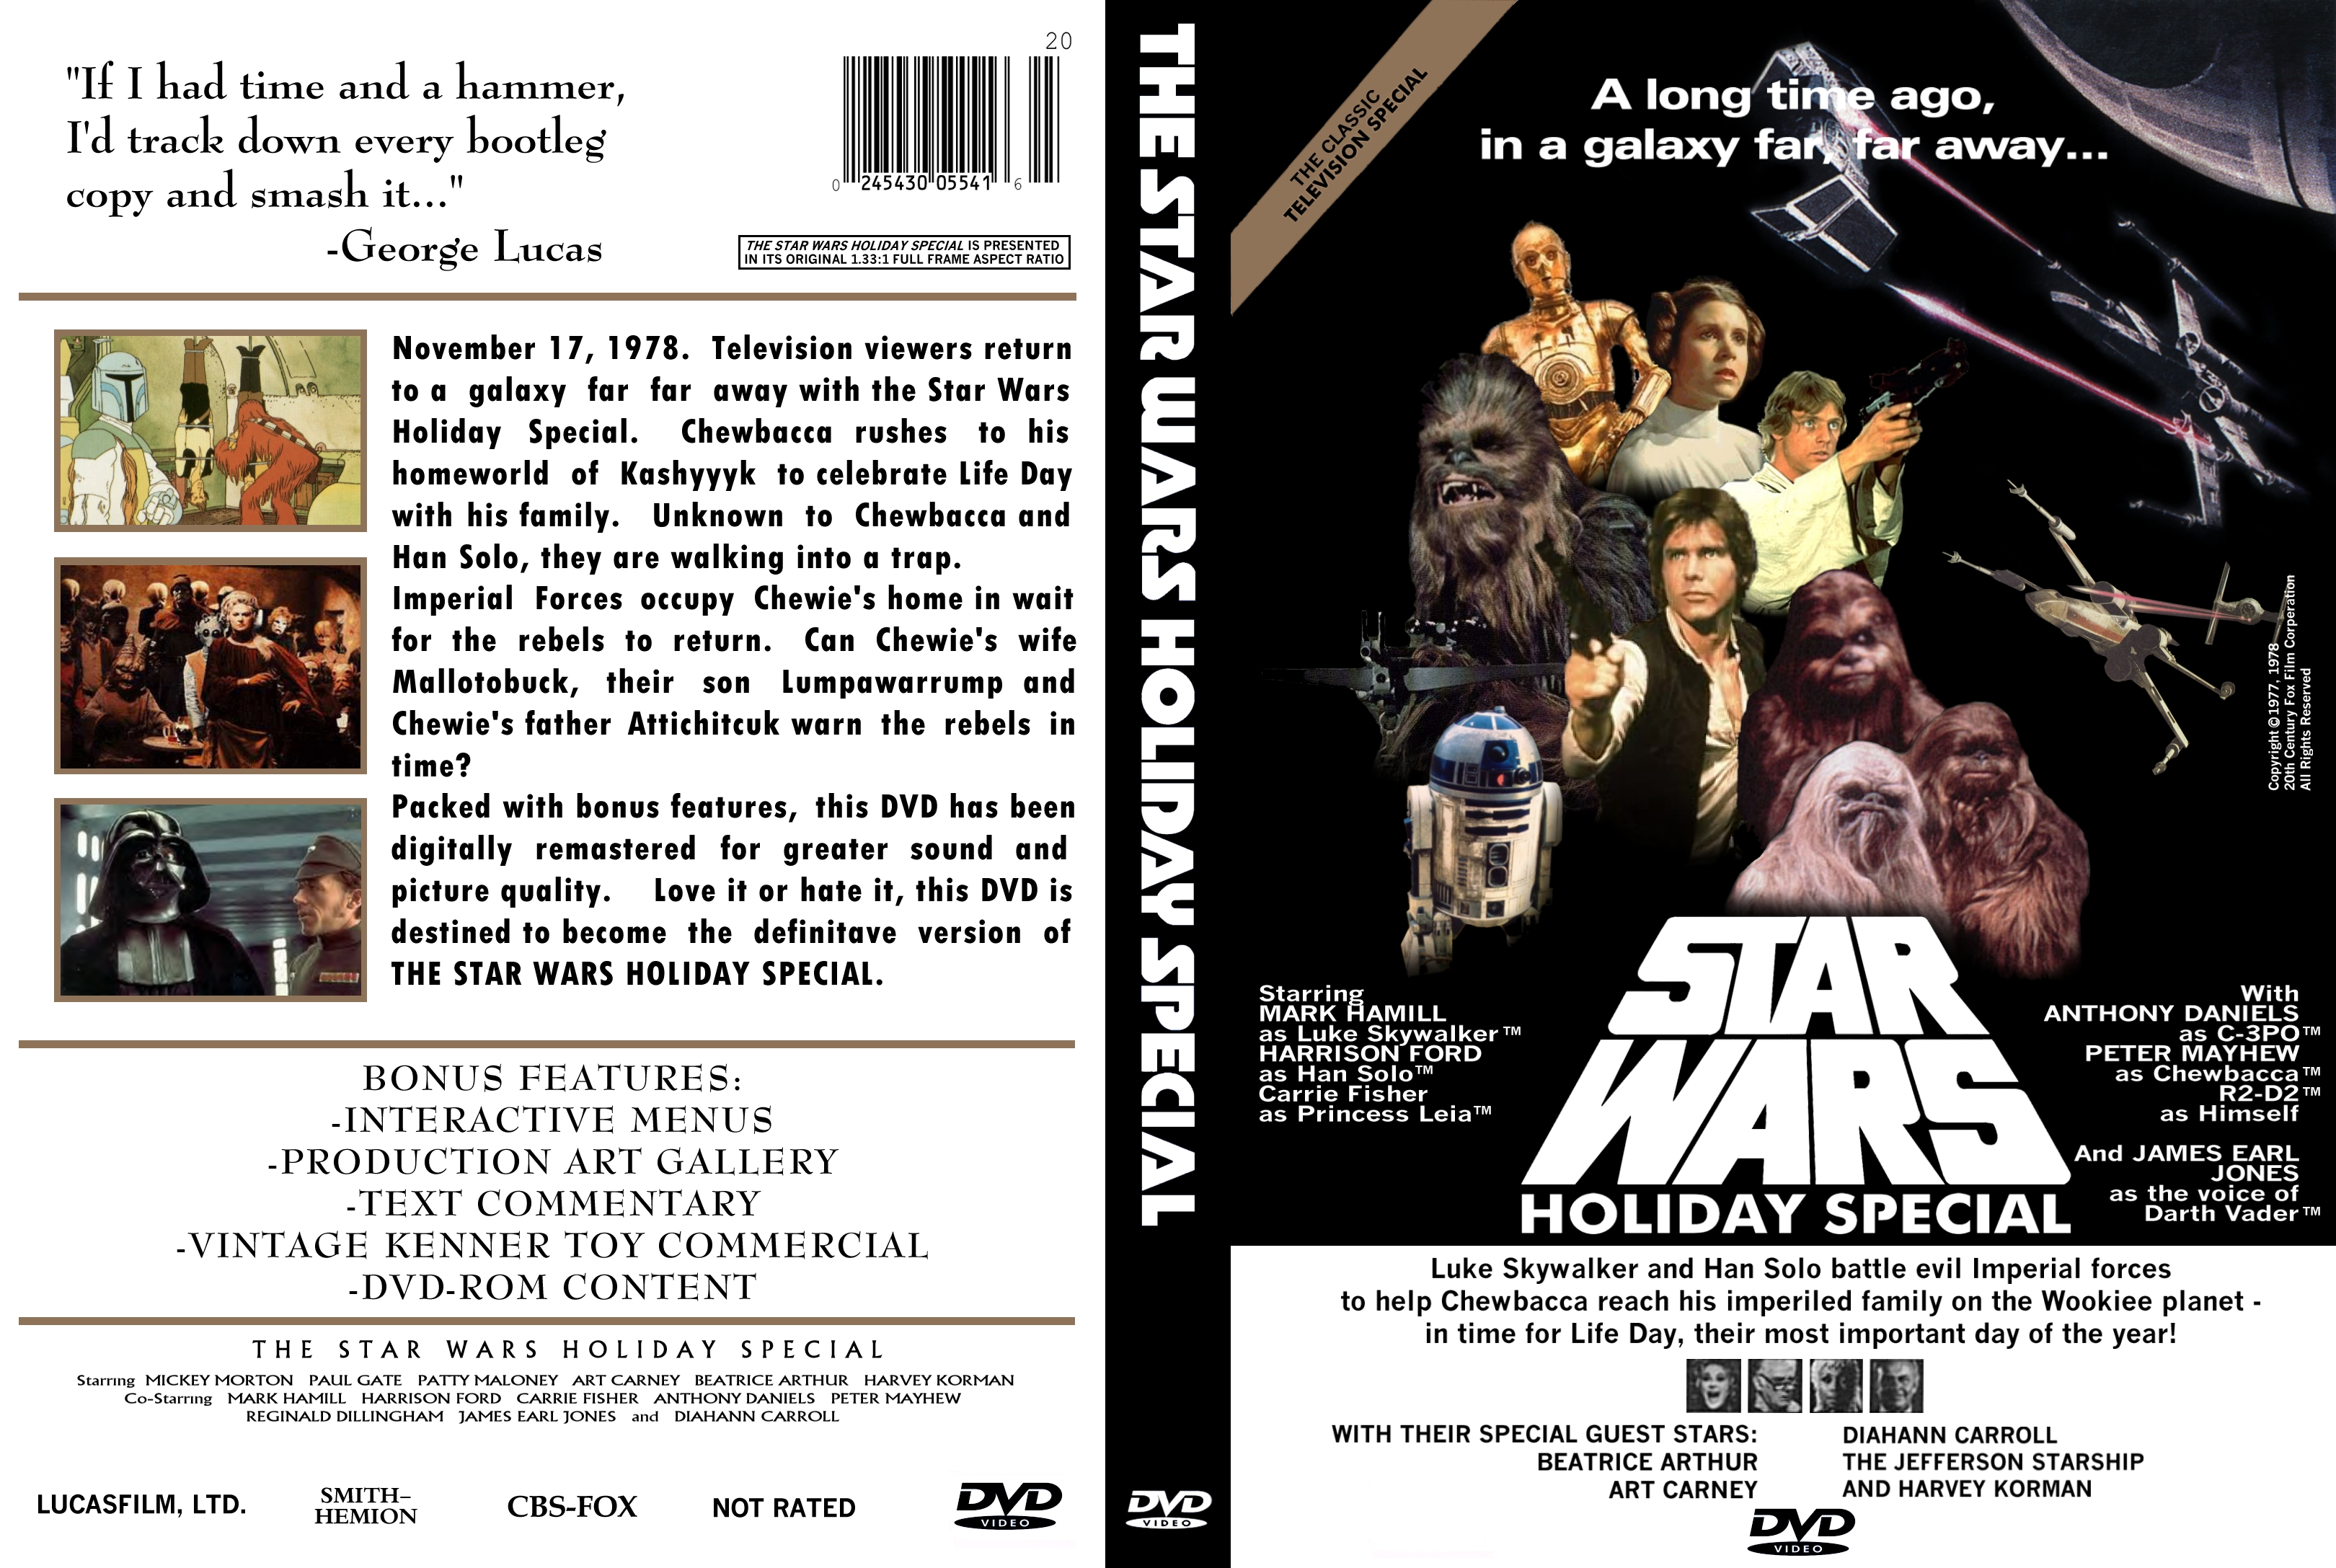 The Star Wars Holiday Special movie